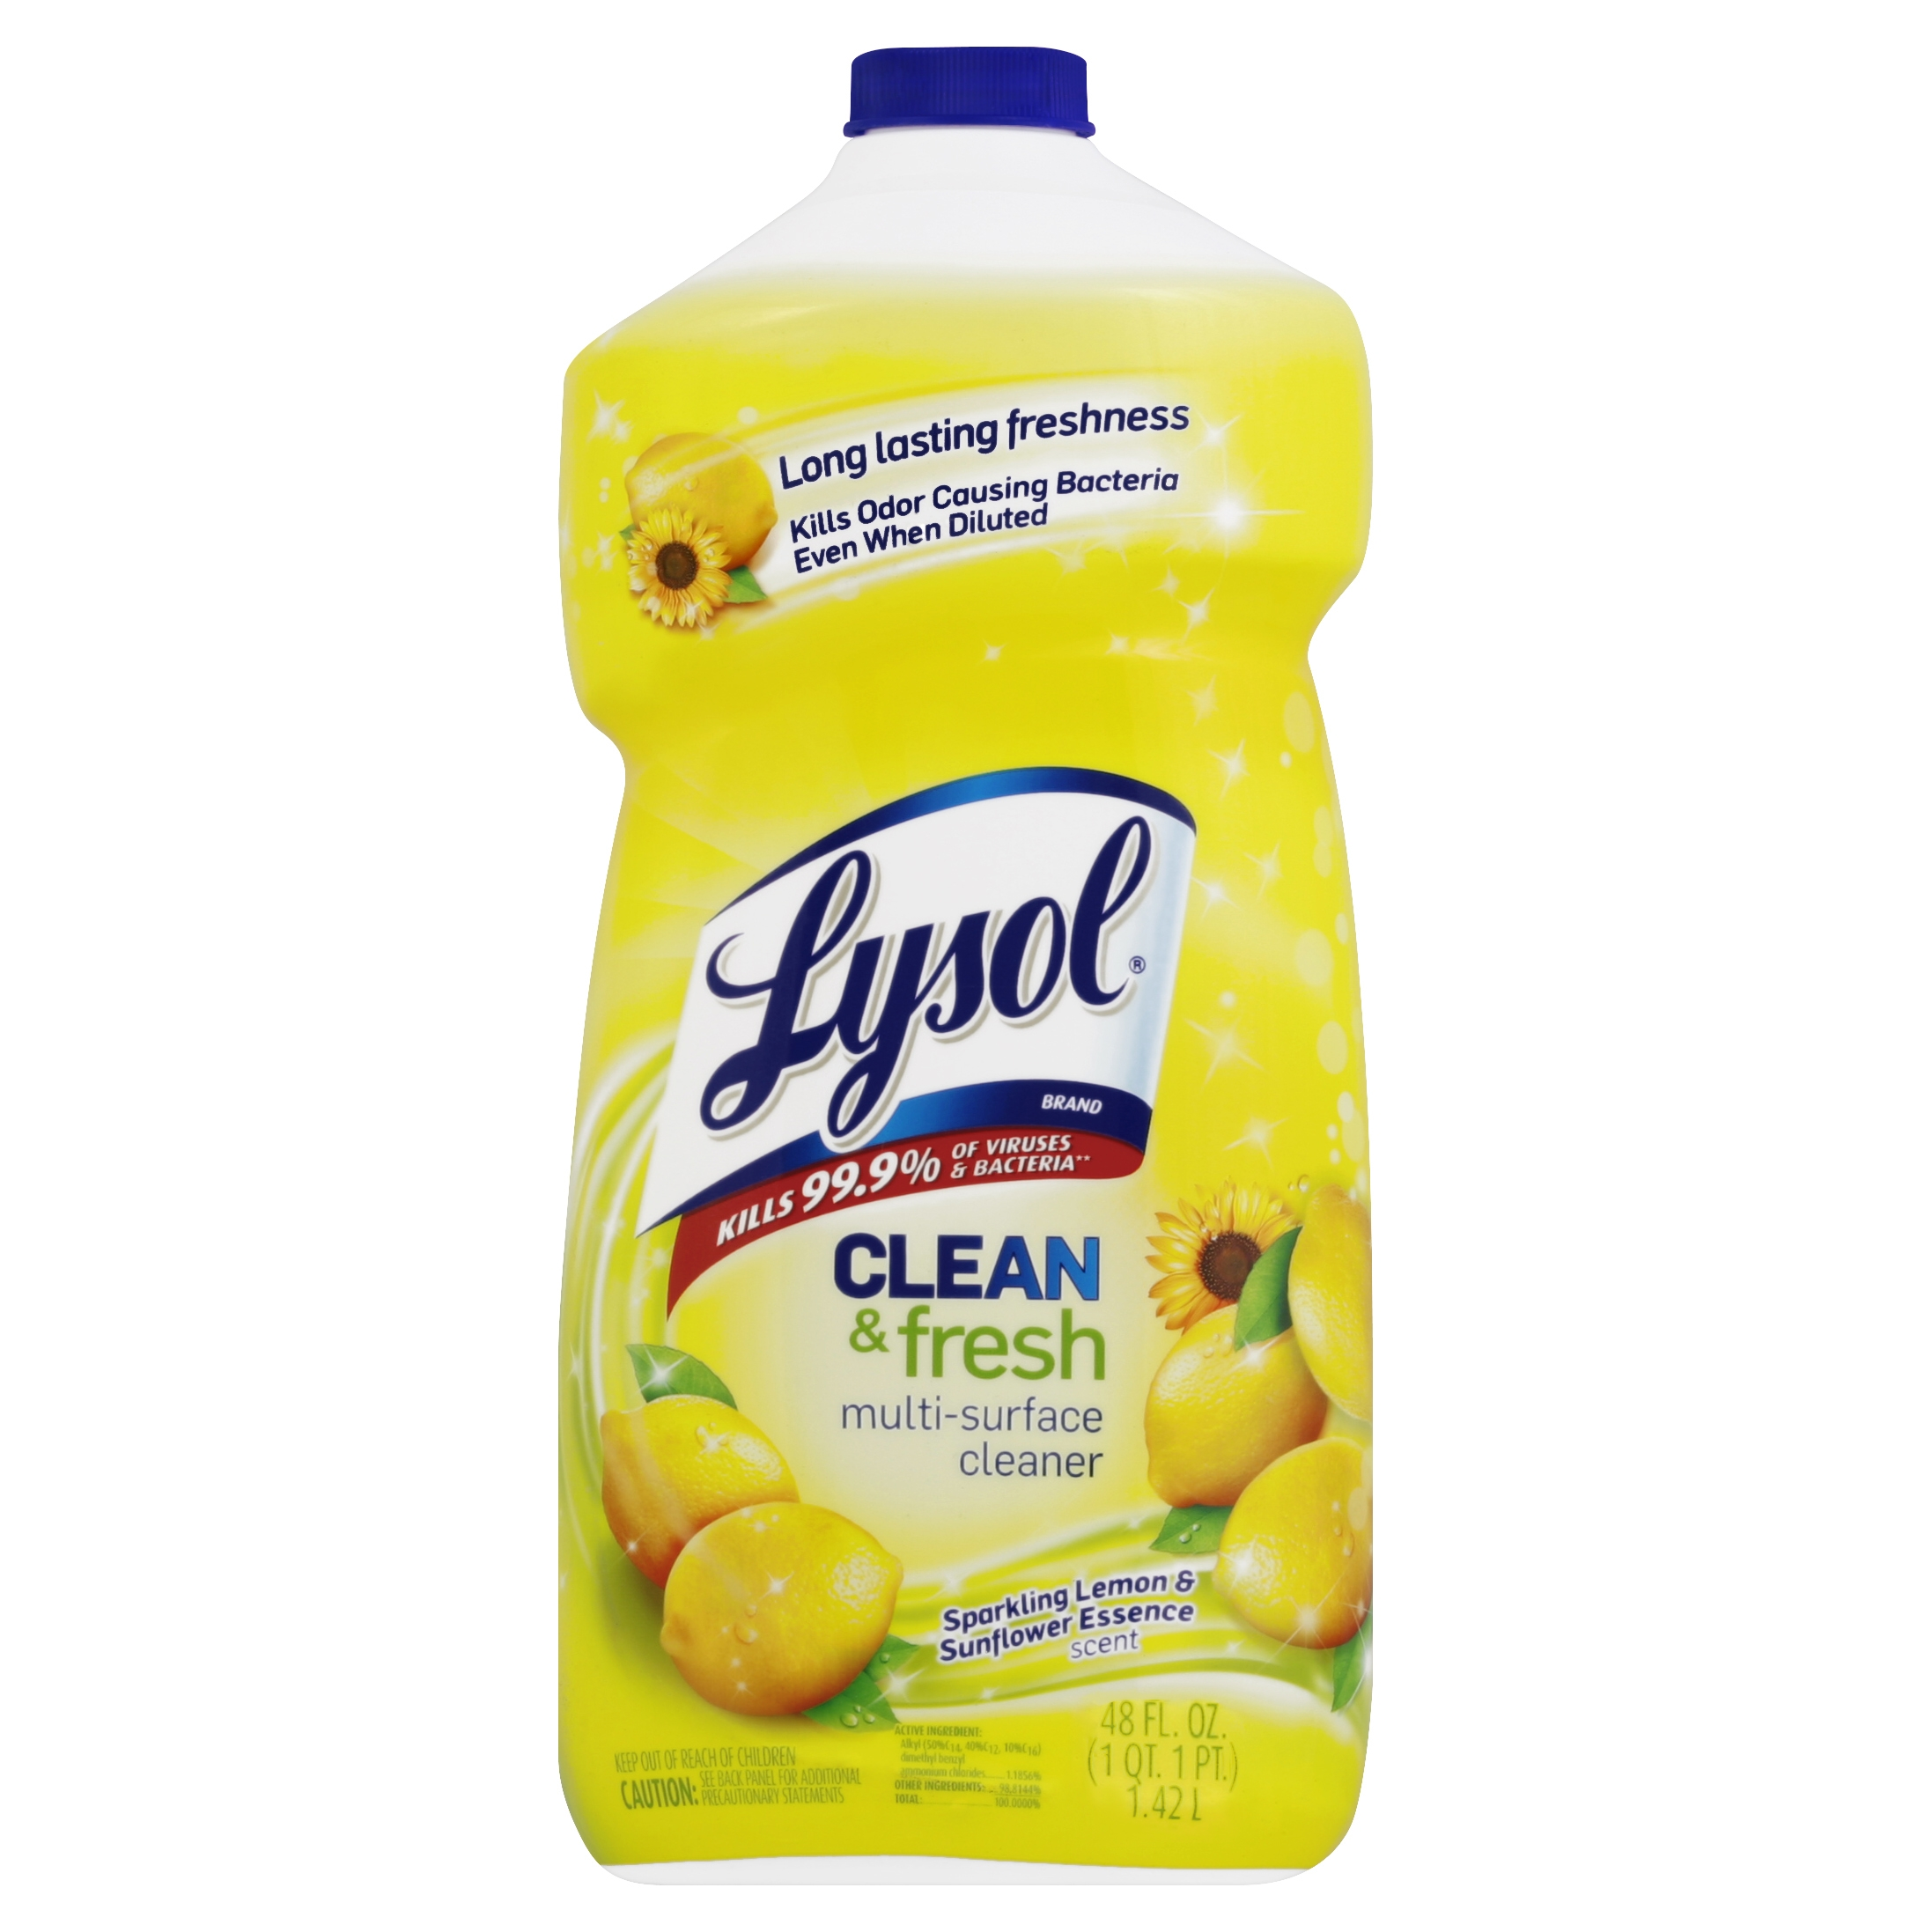 Lysol Clean and Fresh Multi-Surface Cleaner, Lemon Sunflower Scent, 48 Ounce